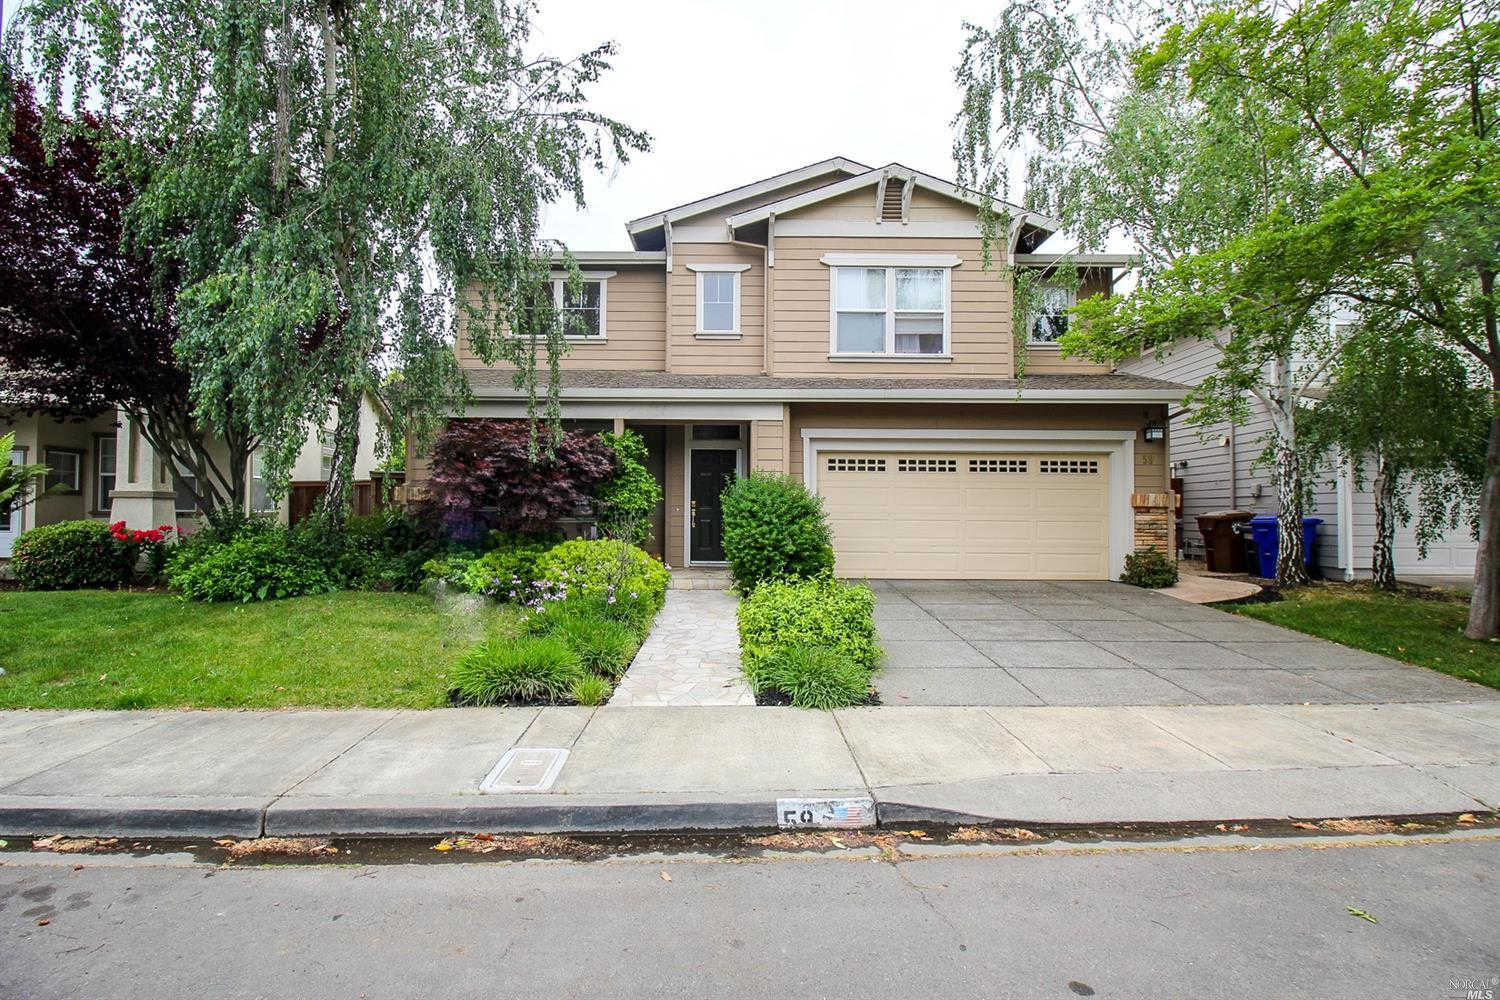 59 Summerbrooke Circle, Napa, CA 94558 has an Open House on  Sunday, July 21, 2019 12:00 PM to 3:00 PM